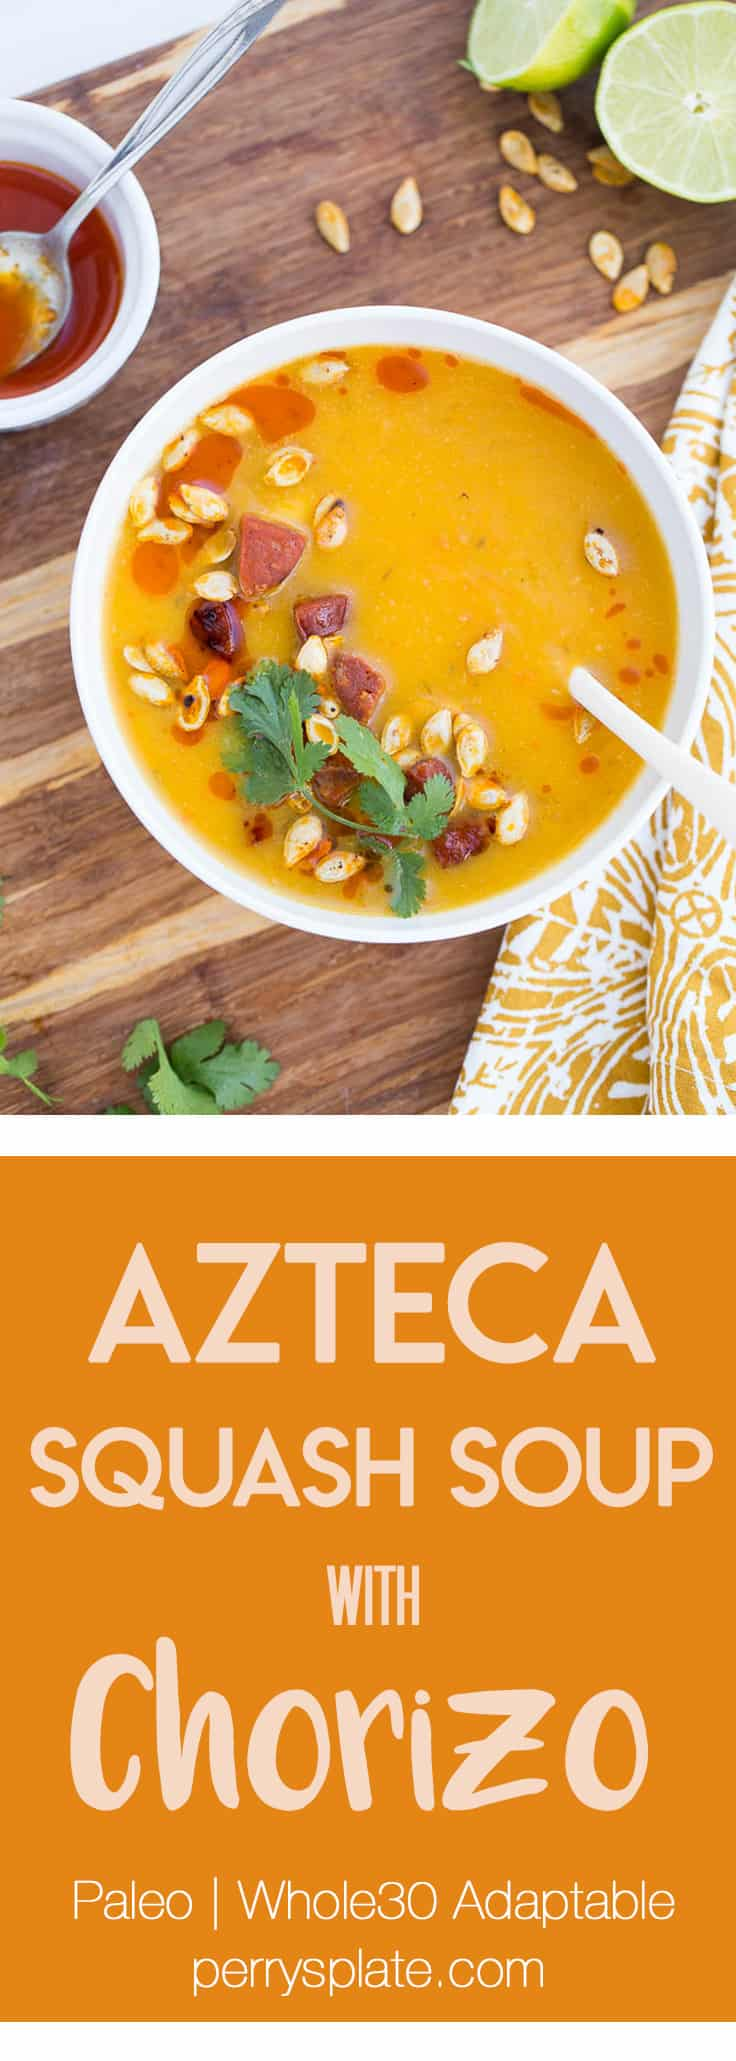 Azteca Squash Soup with Chorizo | perrysplate.com | paleo soup recipe | whole30 recipe | butternut squash soup